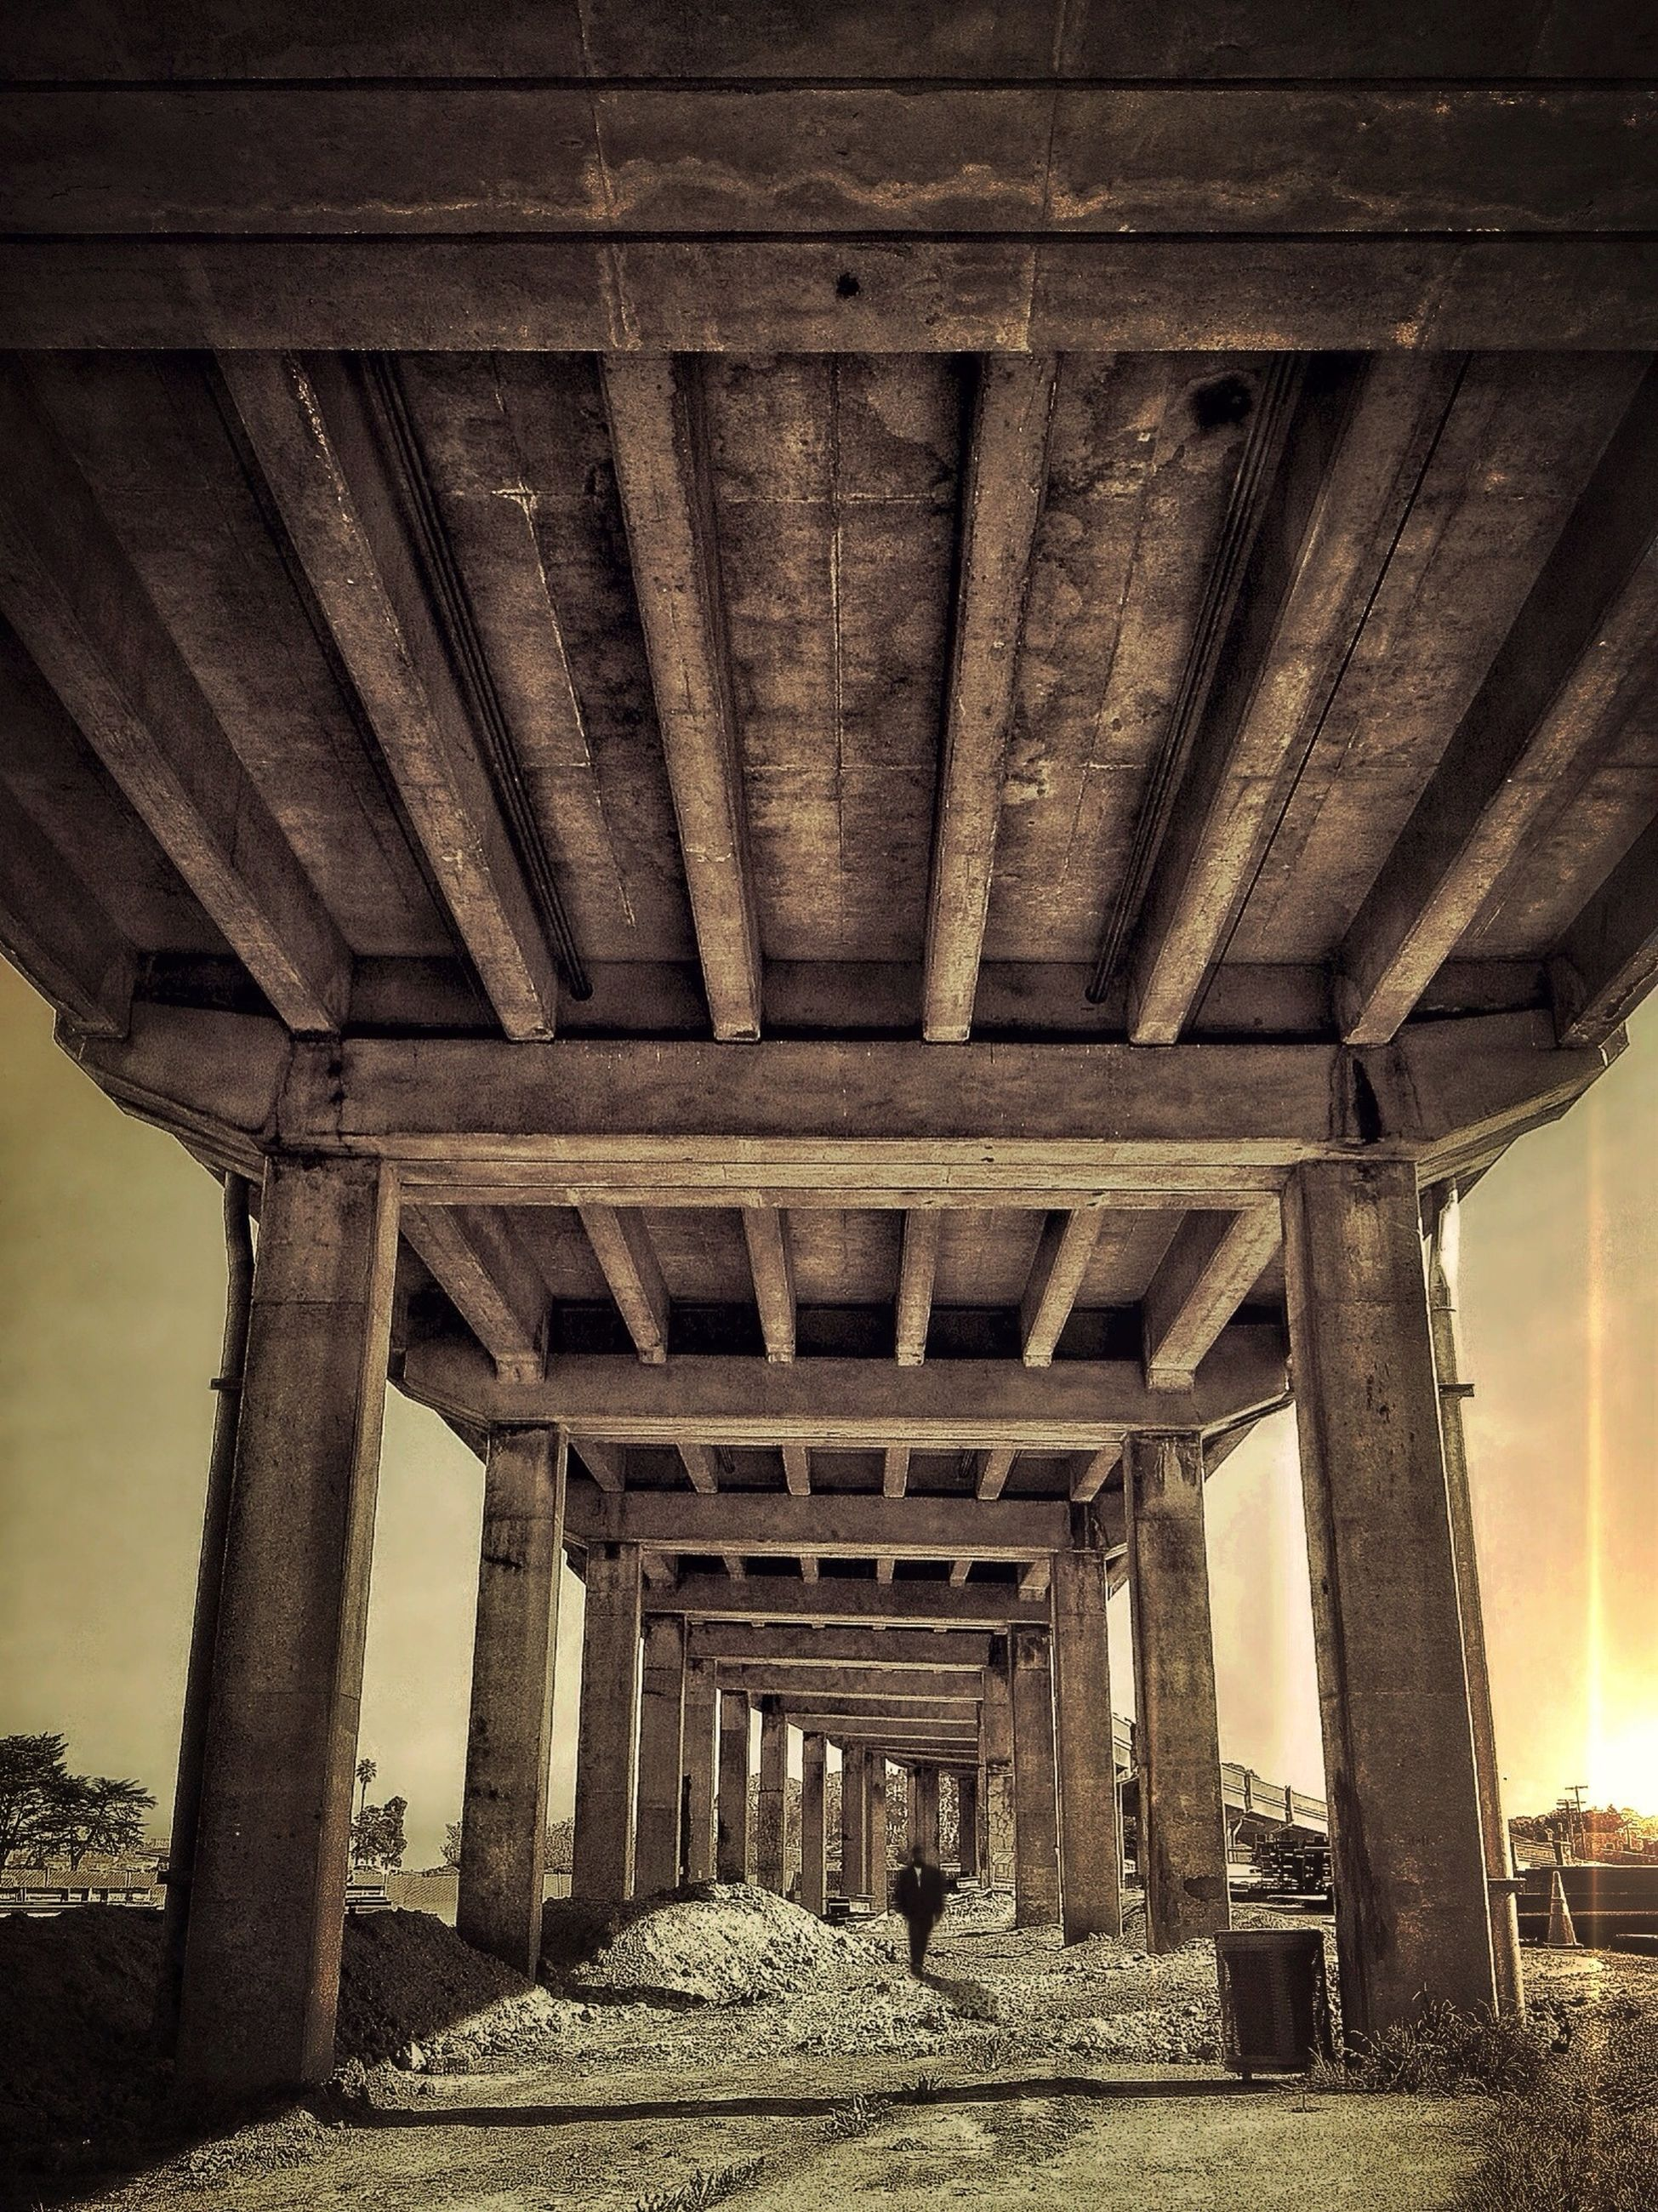 built structure, architecture, architectural column, the way forward, ceiling, column, indoors, sky, connection, diminishing perspective, bridge - man made structure, support, in a row, low angle view, sunlight, vanishing point, below, arch, day, bridge